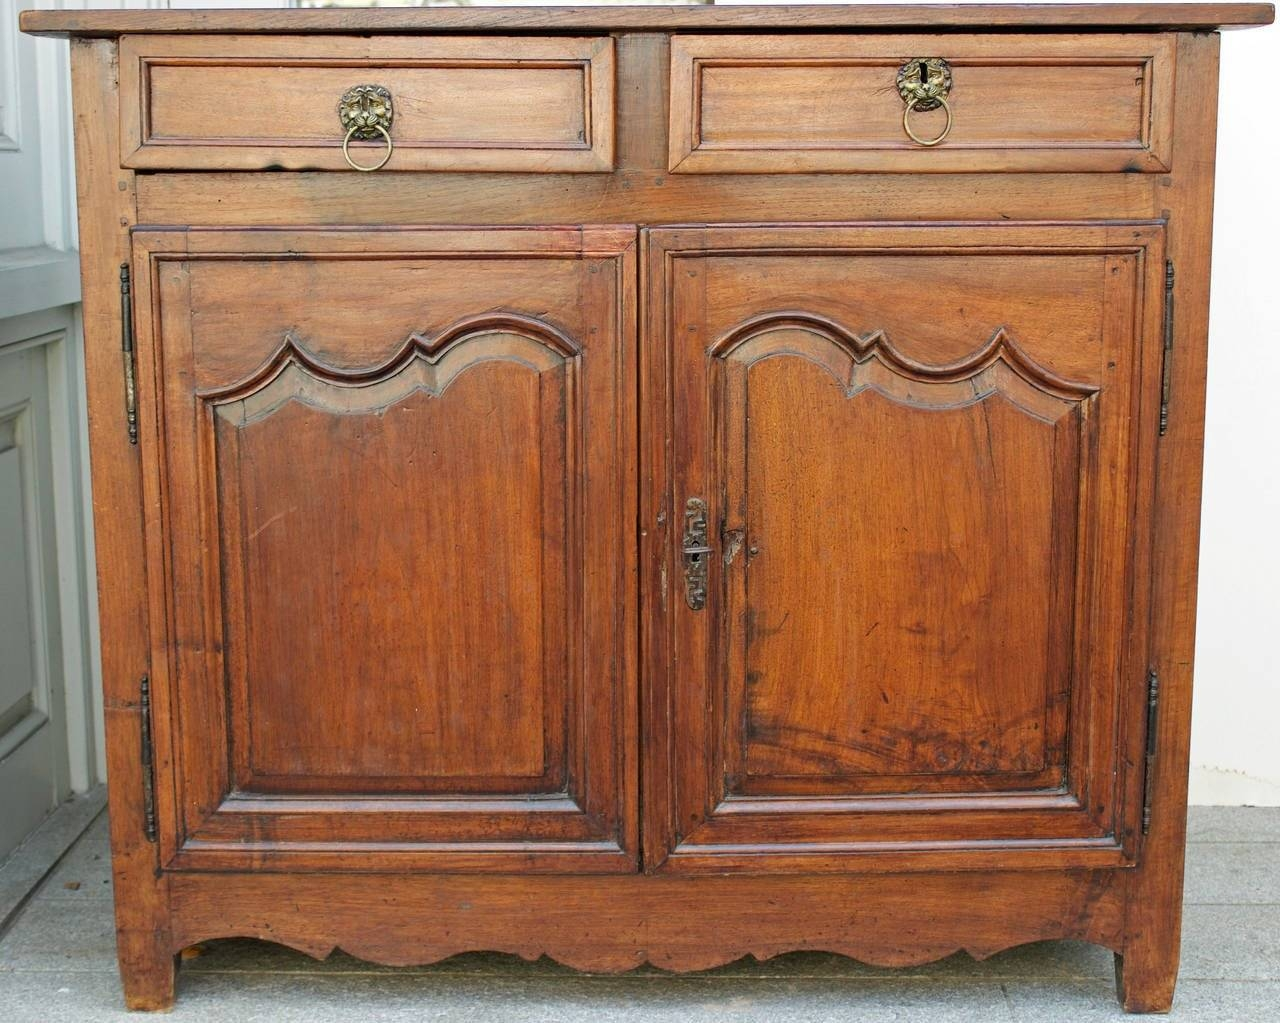 18Th Century French Country Louis Xiv Walnut Buffet Or Sideboard throughout French Country Sideboards (Image 1 of 30)